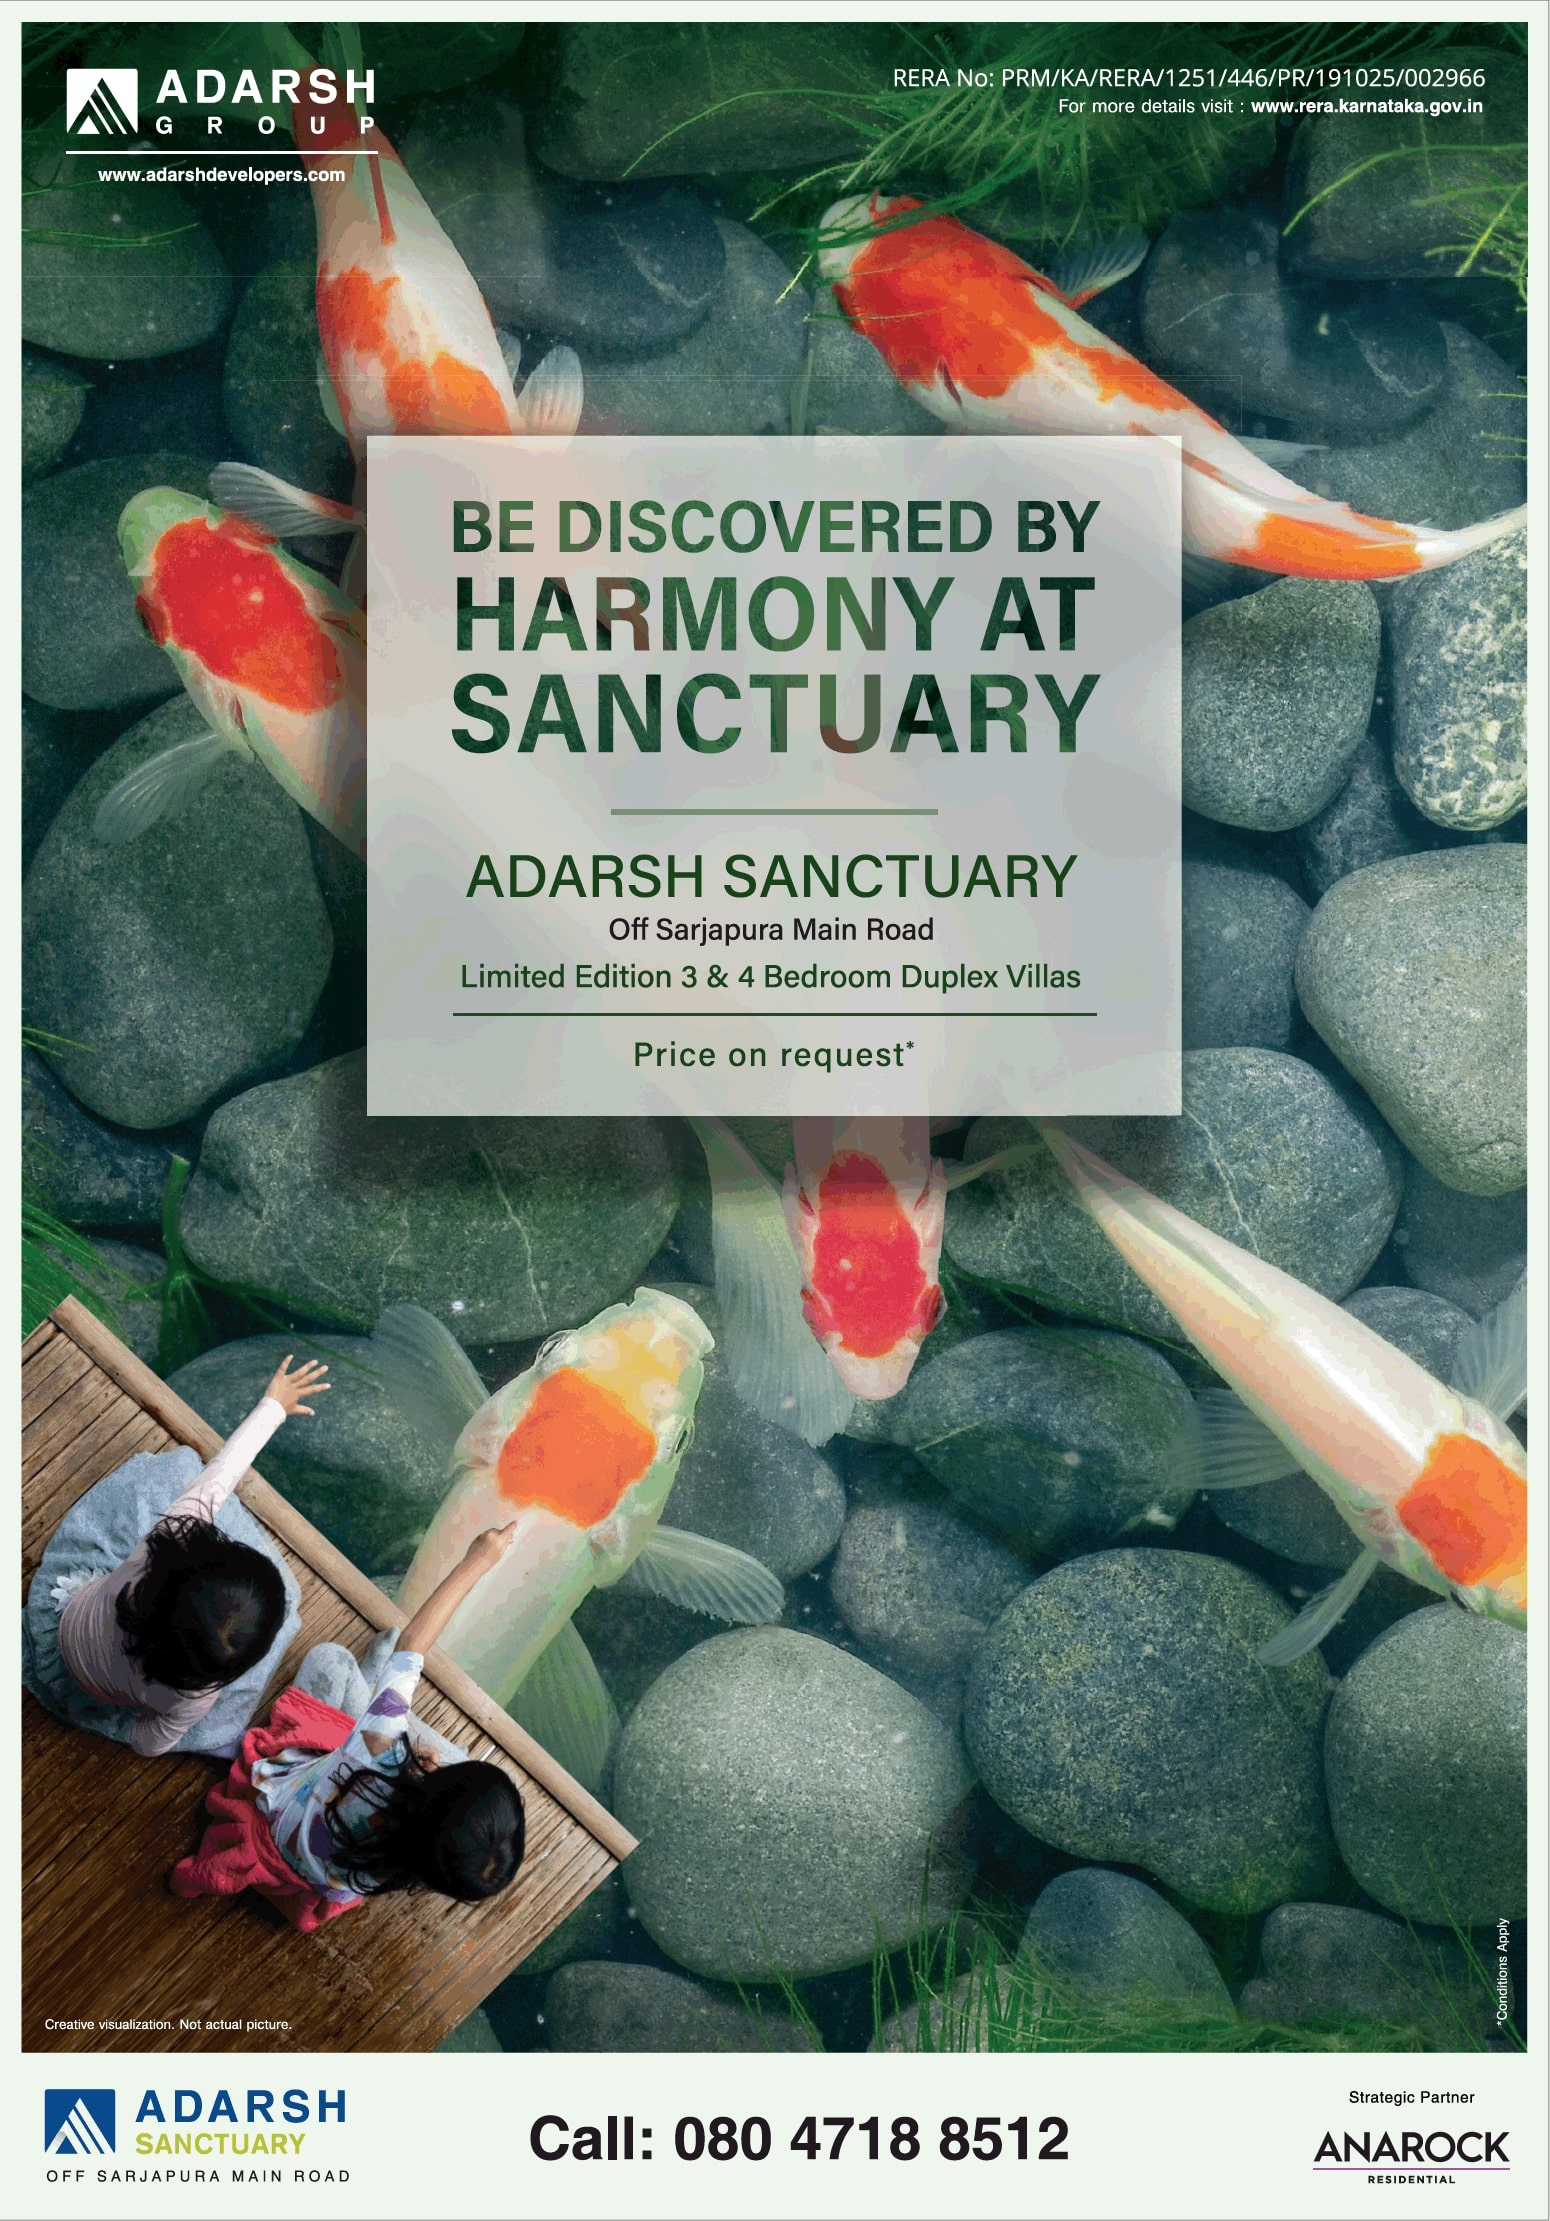 adarsh-group-be-discovered-by-harmony-at-sanctuary-ad-property-times-bangalore-08-01-2021